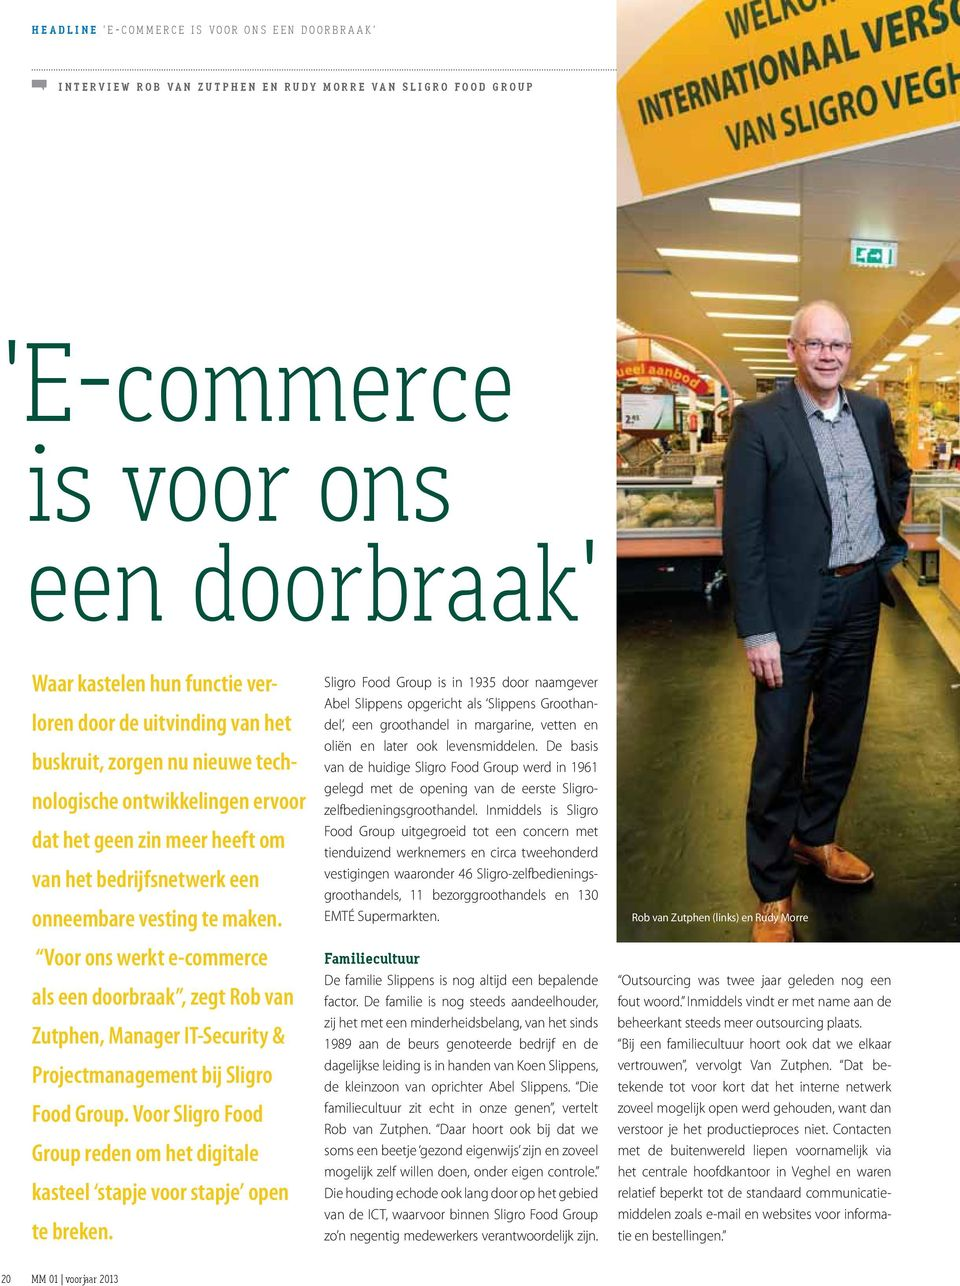 Voor ons werkt e-commerce als een doorbraak, zegt Rob van Zutphen, Manager IT-Security & Projectmanagement bij Sligro Food Group.